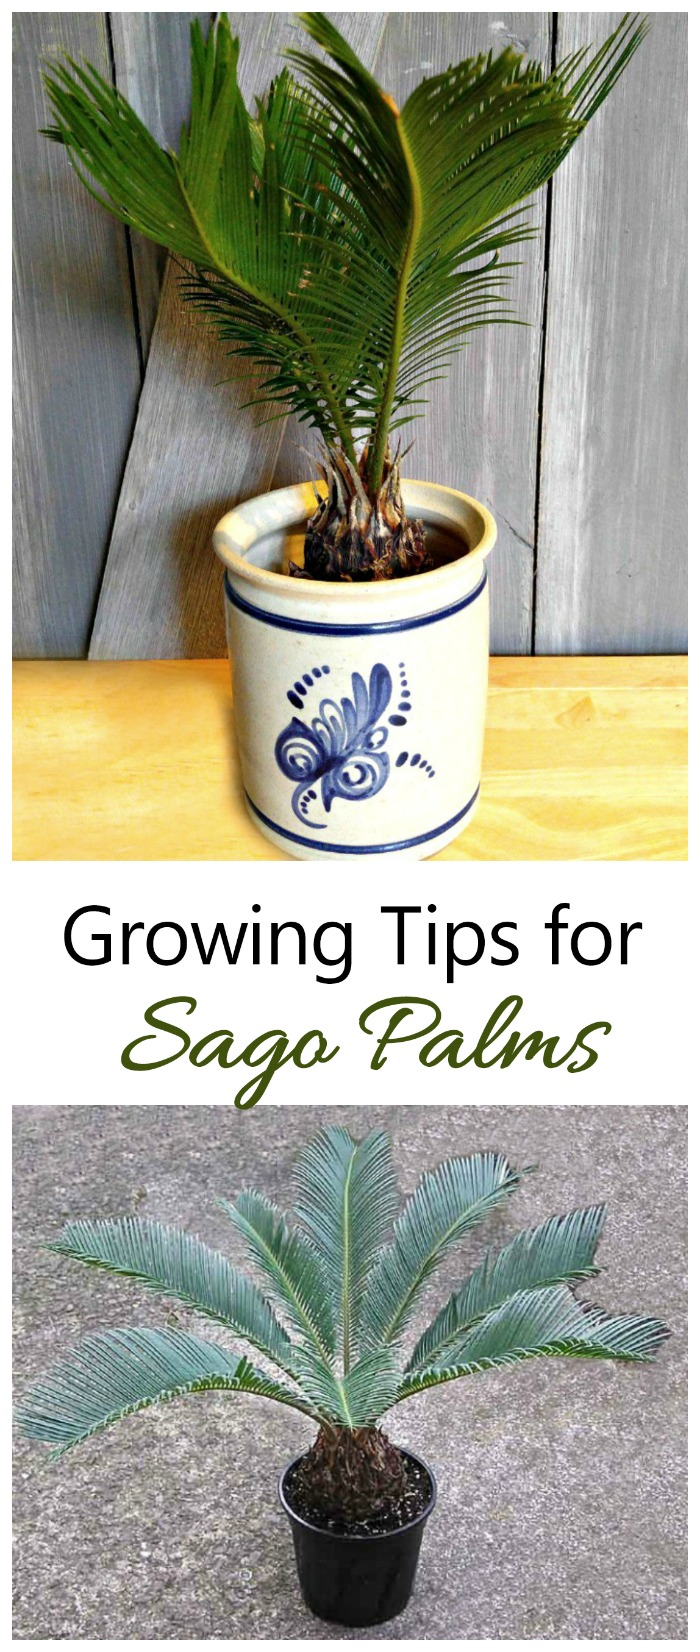 Growing Sago Palms - How to Grow a Sago Palm Tree on house plant schefflera arboricola, house plant care and names, fan palm plant care, house plant medinilla, house plant oxalis, house plant desert rose, bamboo plants care, house plant pest control, house plant schefflera actinophylla, house plant grass, house palm plants types, house plant care information, house plant care tips, spider house plant care, house for english ivy plant care, outdoor palm plant care, cycad plant care, chinese evergreen indoor plant care, common house plants and care, majesty palm indoor plant care,